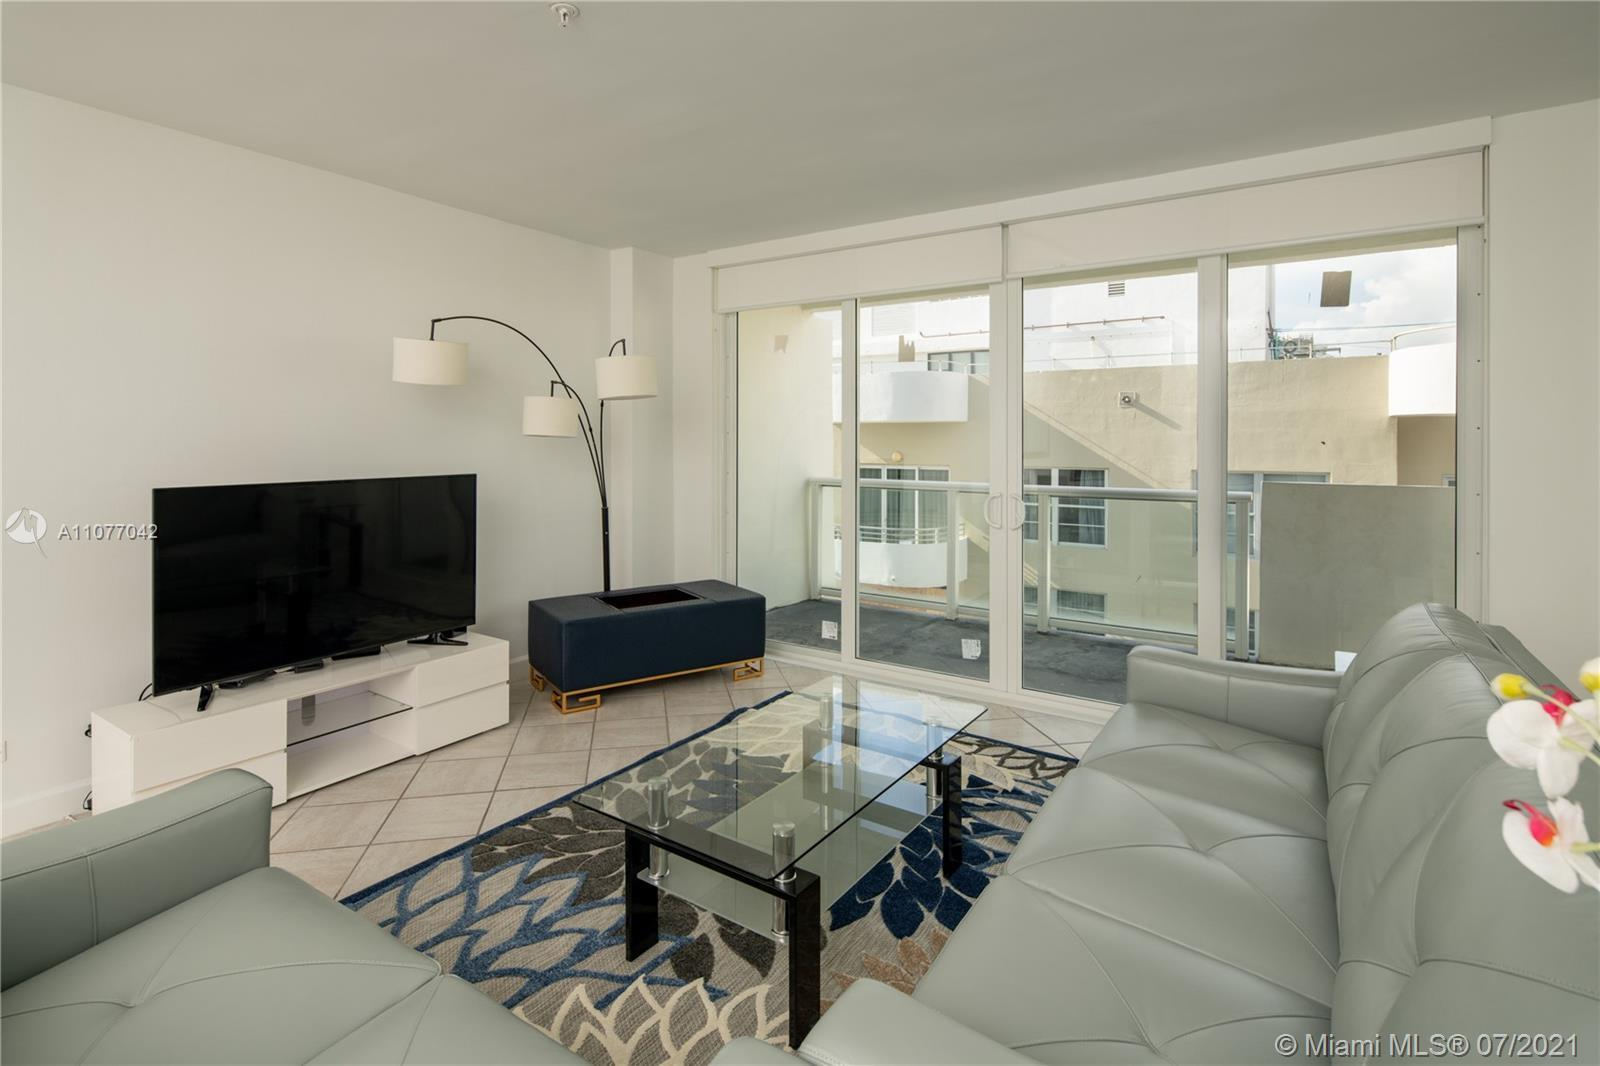 Great opportunity to live on the 17th Floor in an oceanfront bldg! . This corner unit with 1,280 SqF